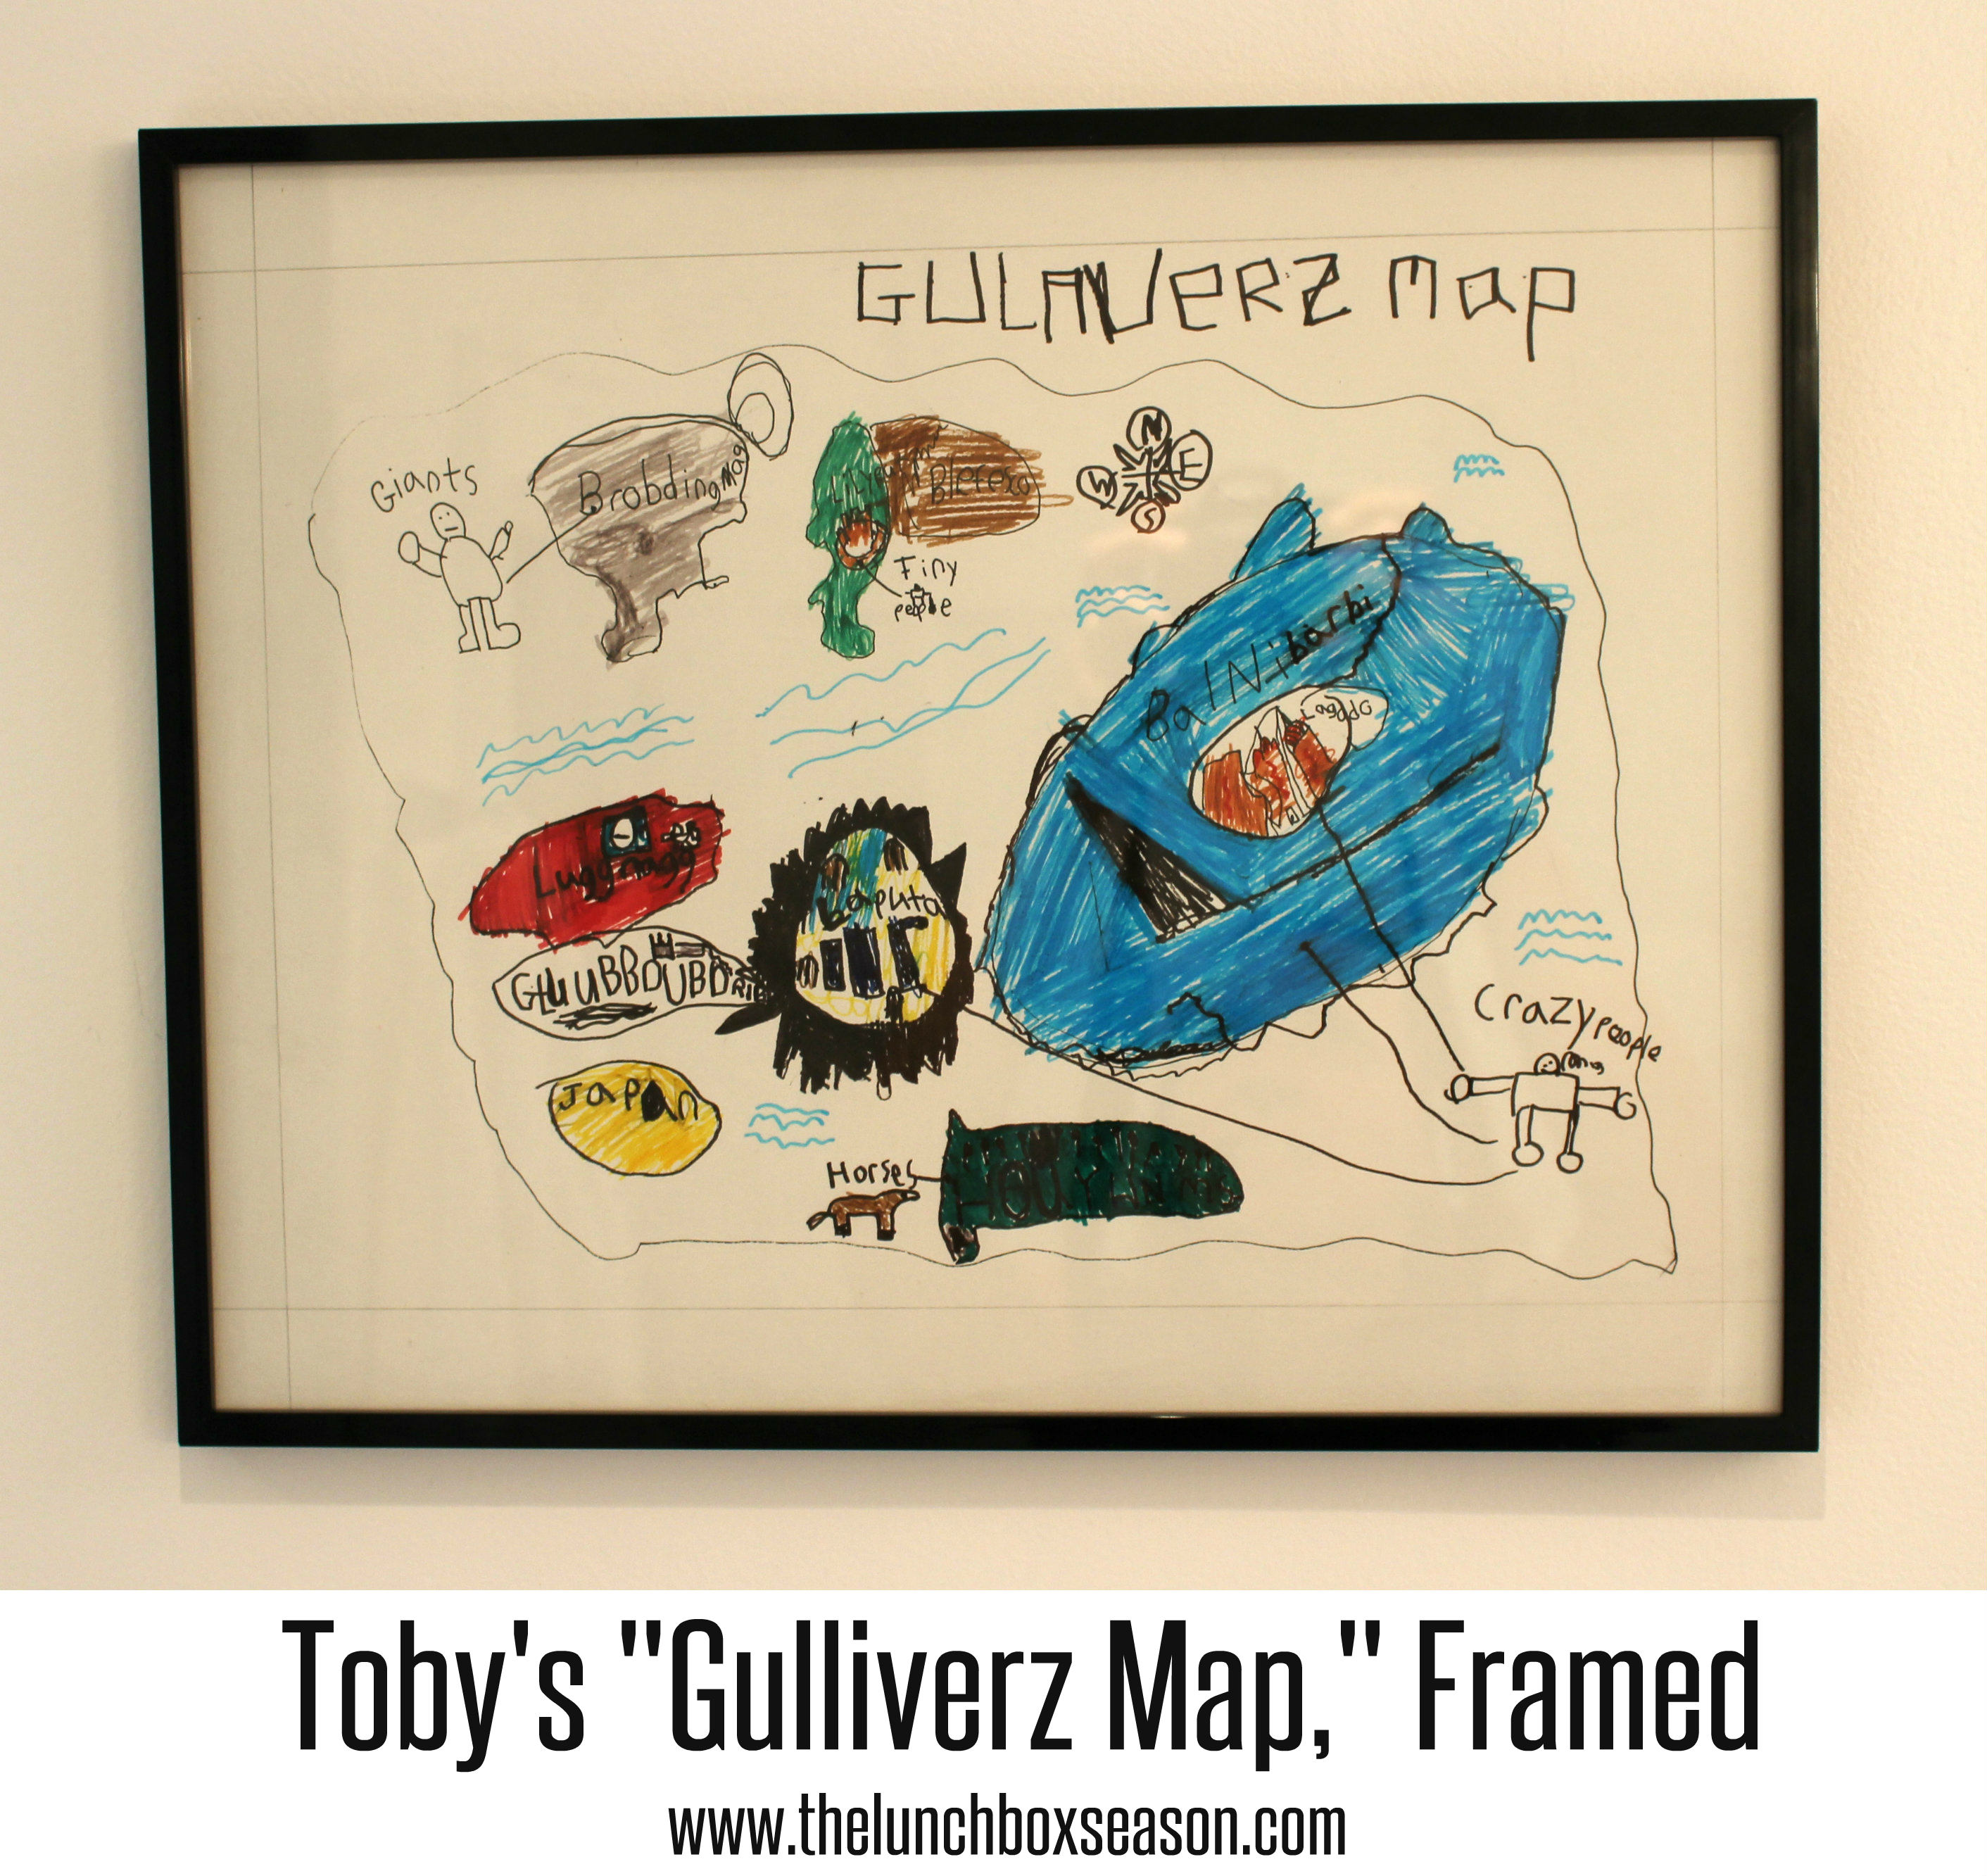 Toby's Gulliverz Map Framed